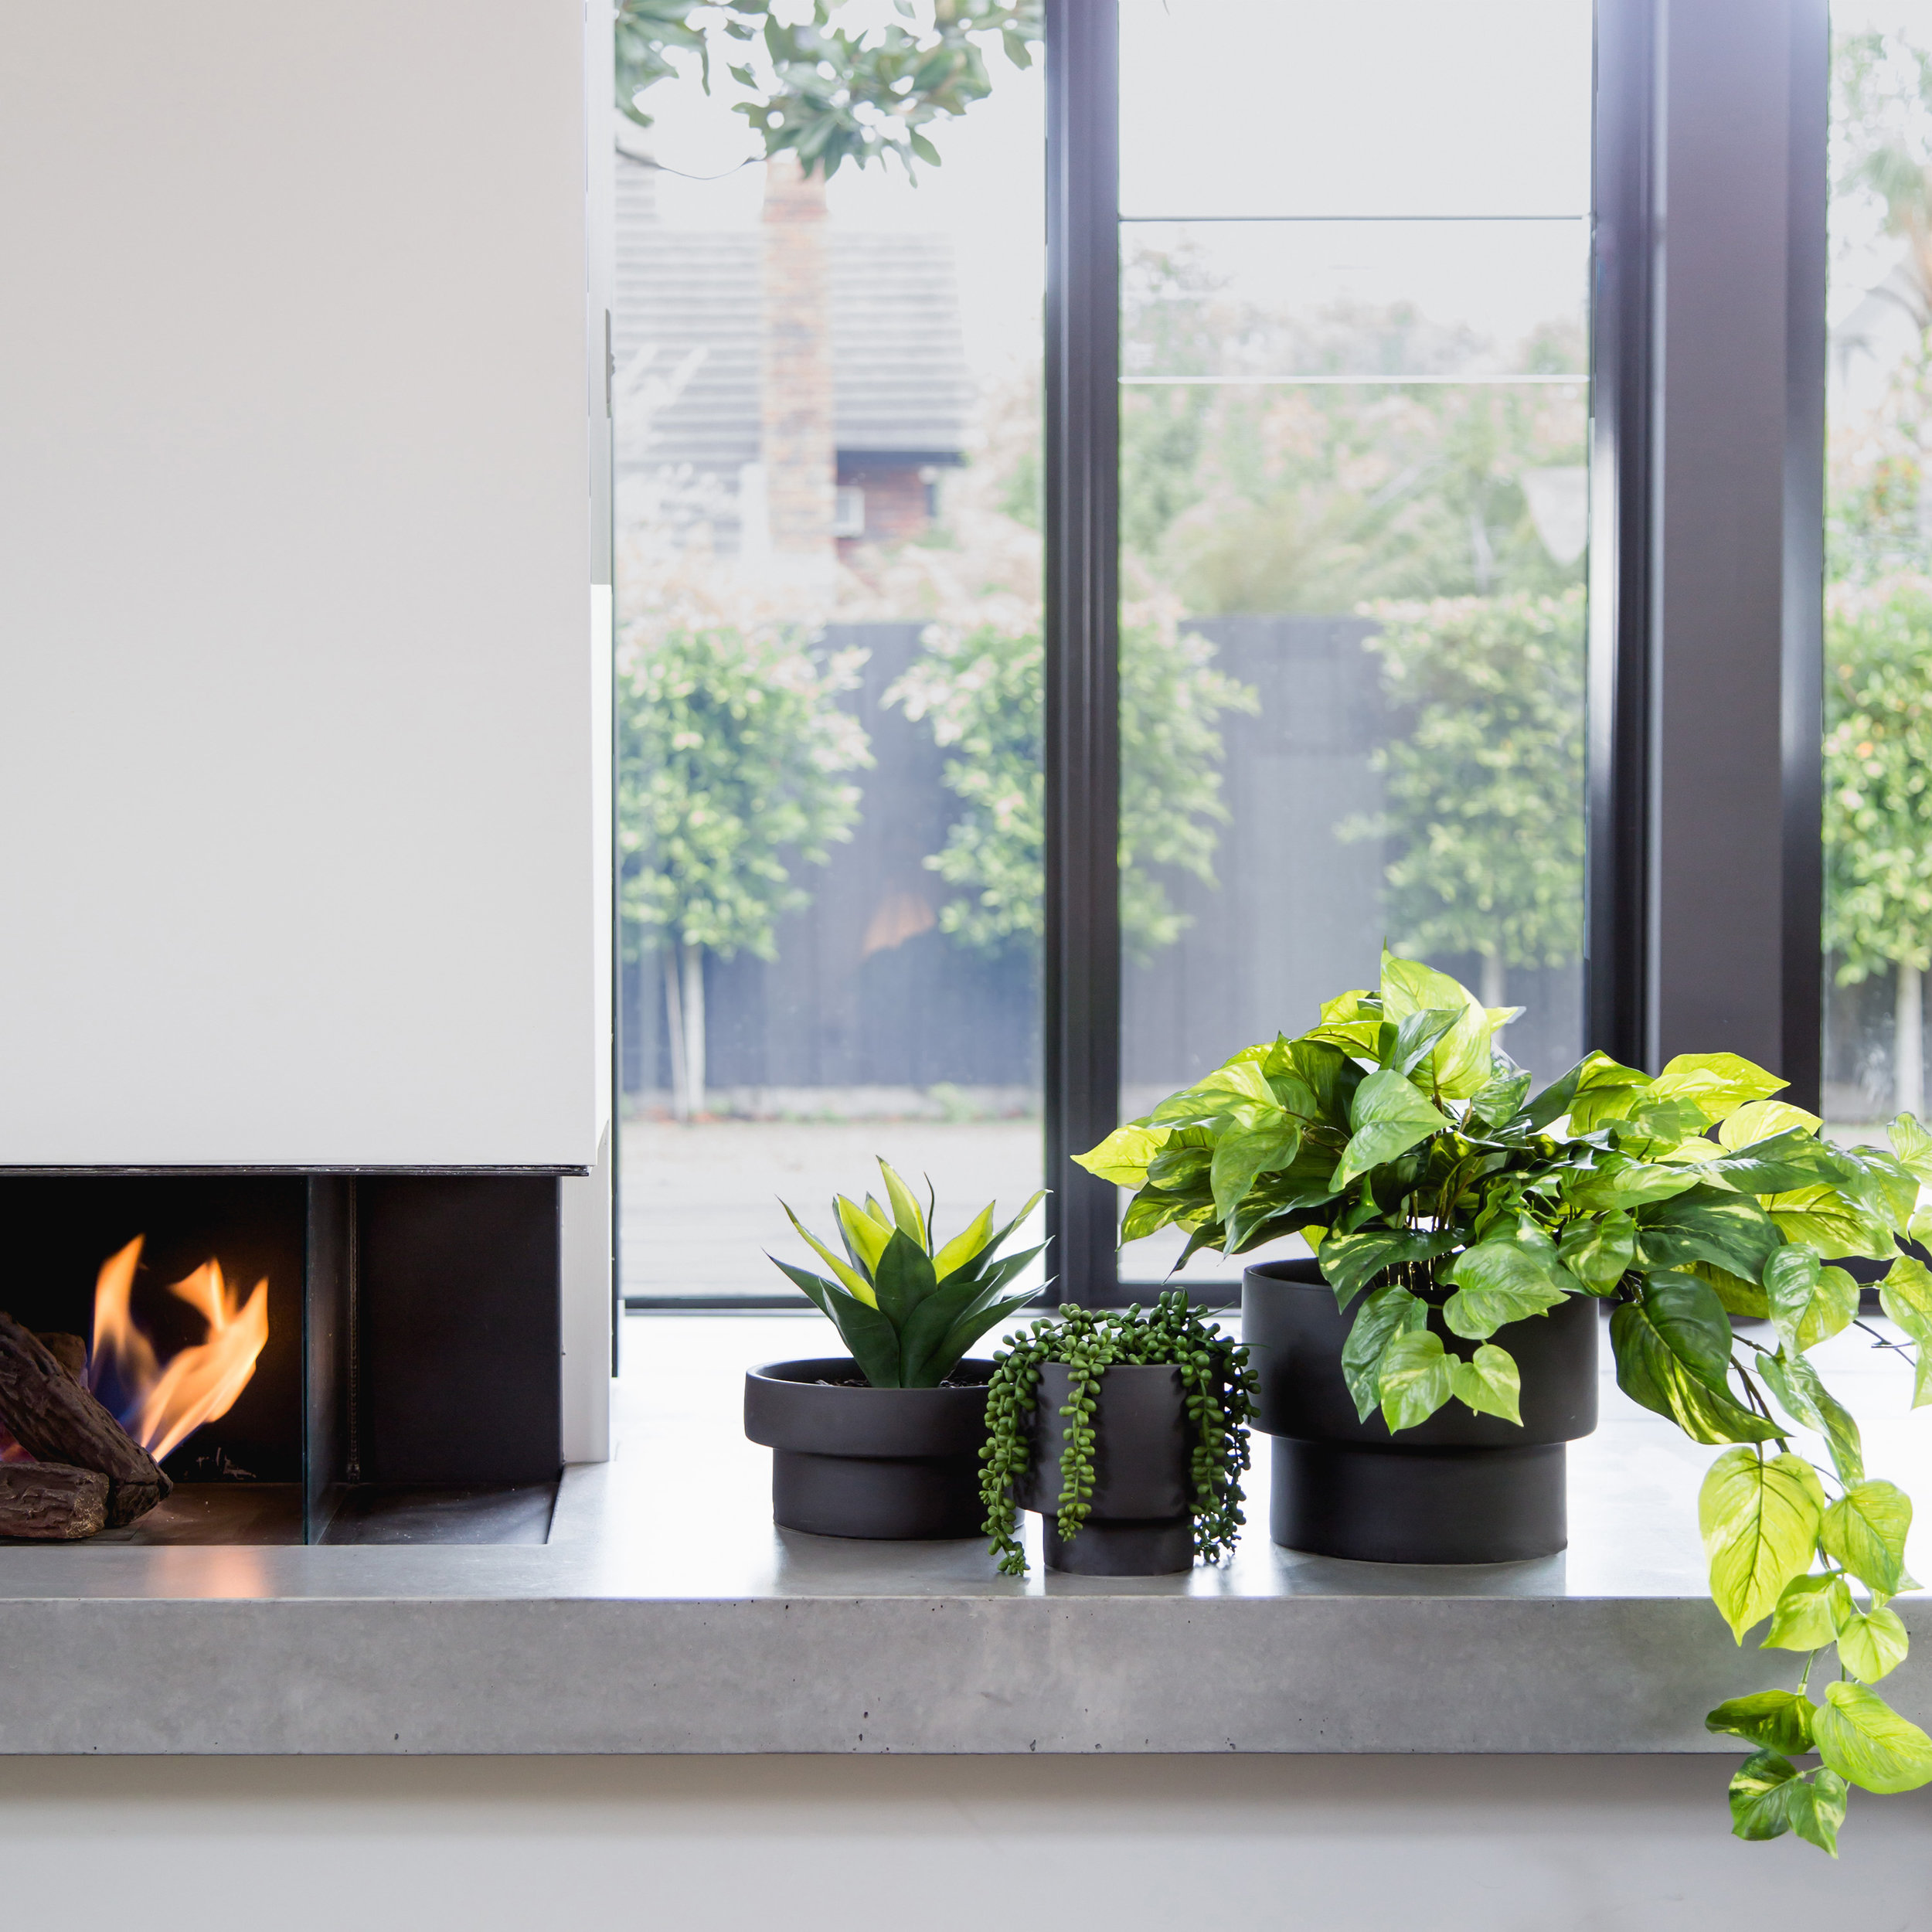 Botanical Layering - We are all about making plants a design feature in & around the home. To create a botanical statement, layering is the way-to-go. We deliberately select vessels from the same series in varying sizes & colours, allowing them to work beautifully together as multiples in a cluster.